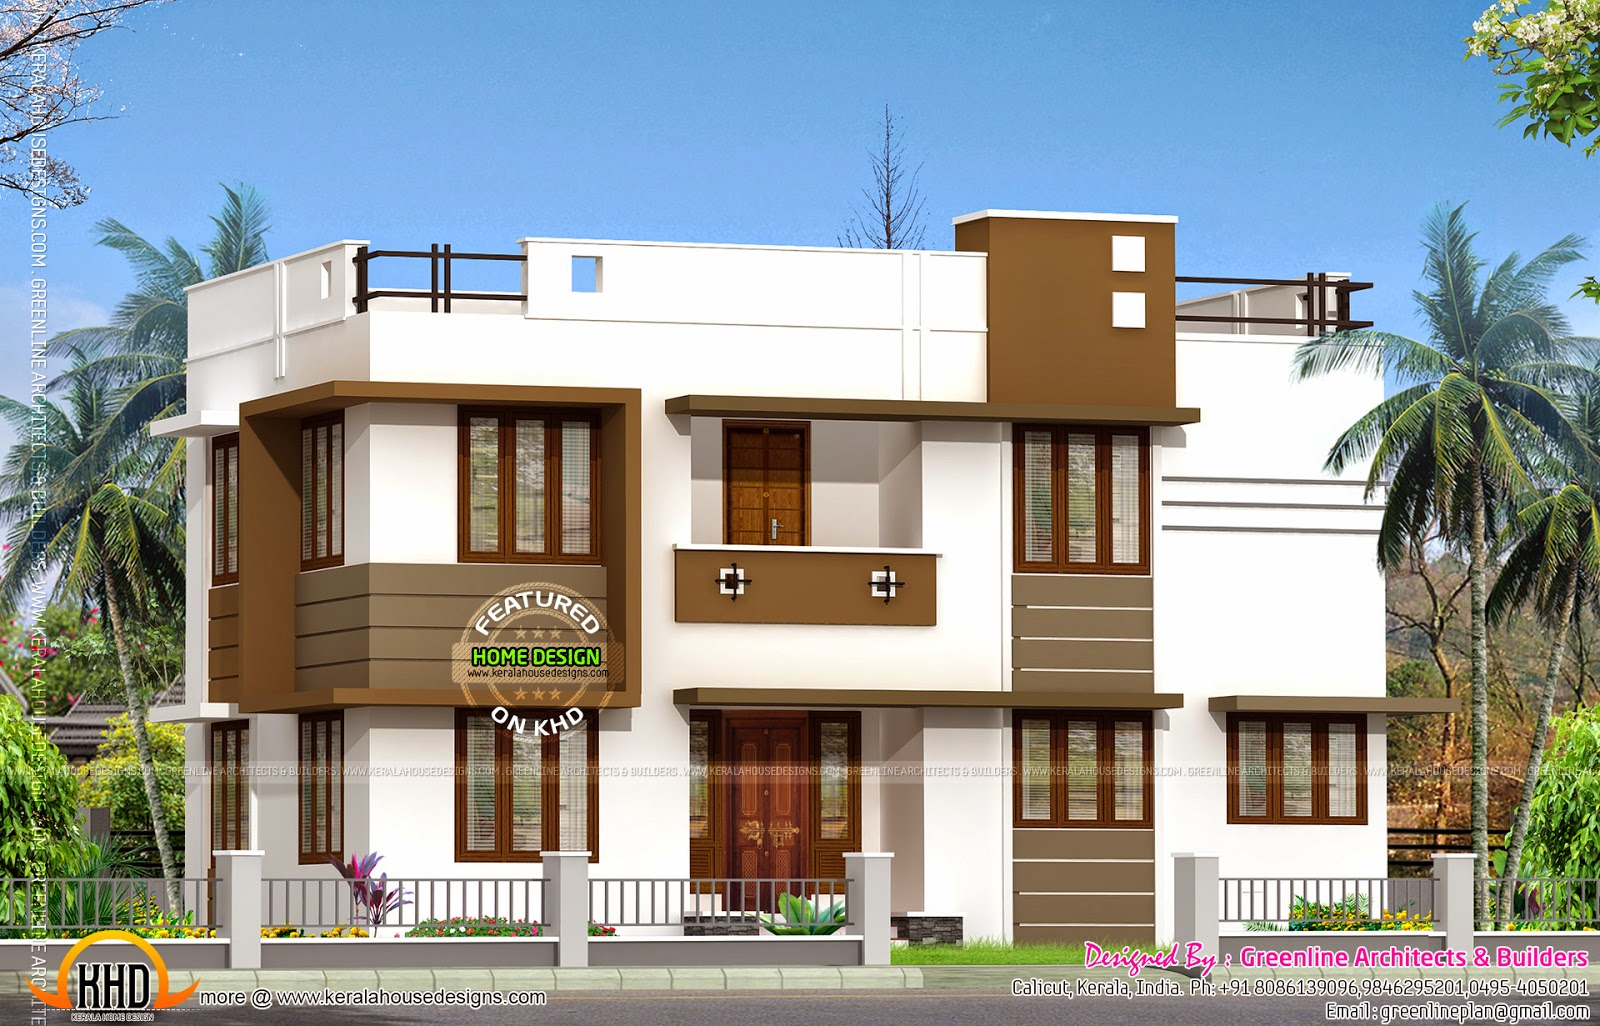 Small budget house plans kerala for Home plans kerala